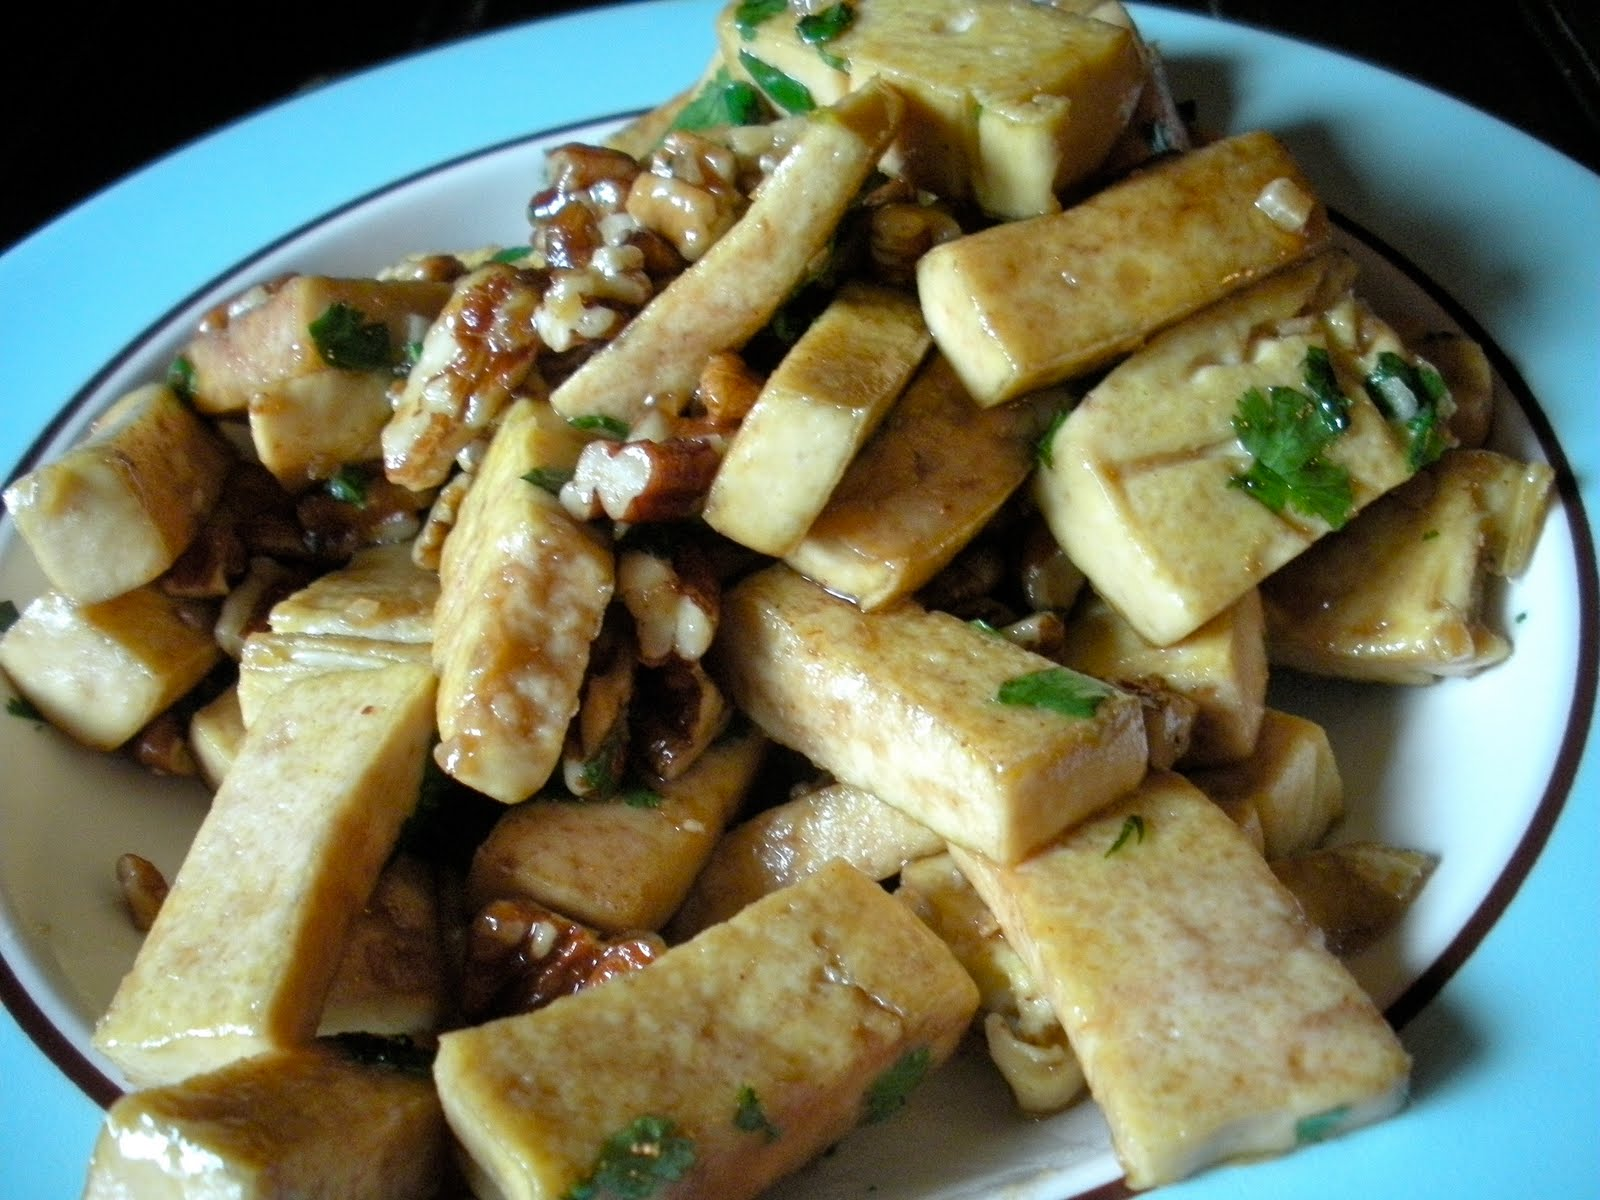 Caramelized Tofu w/ Brussels Sprouts & Mushrooms